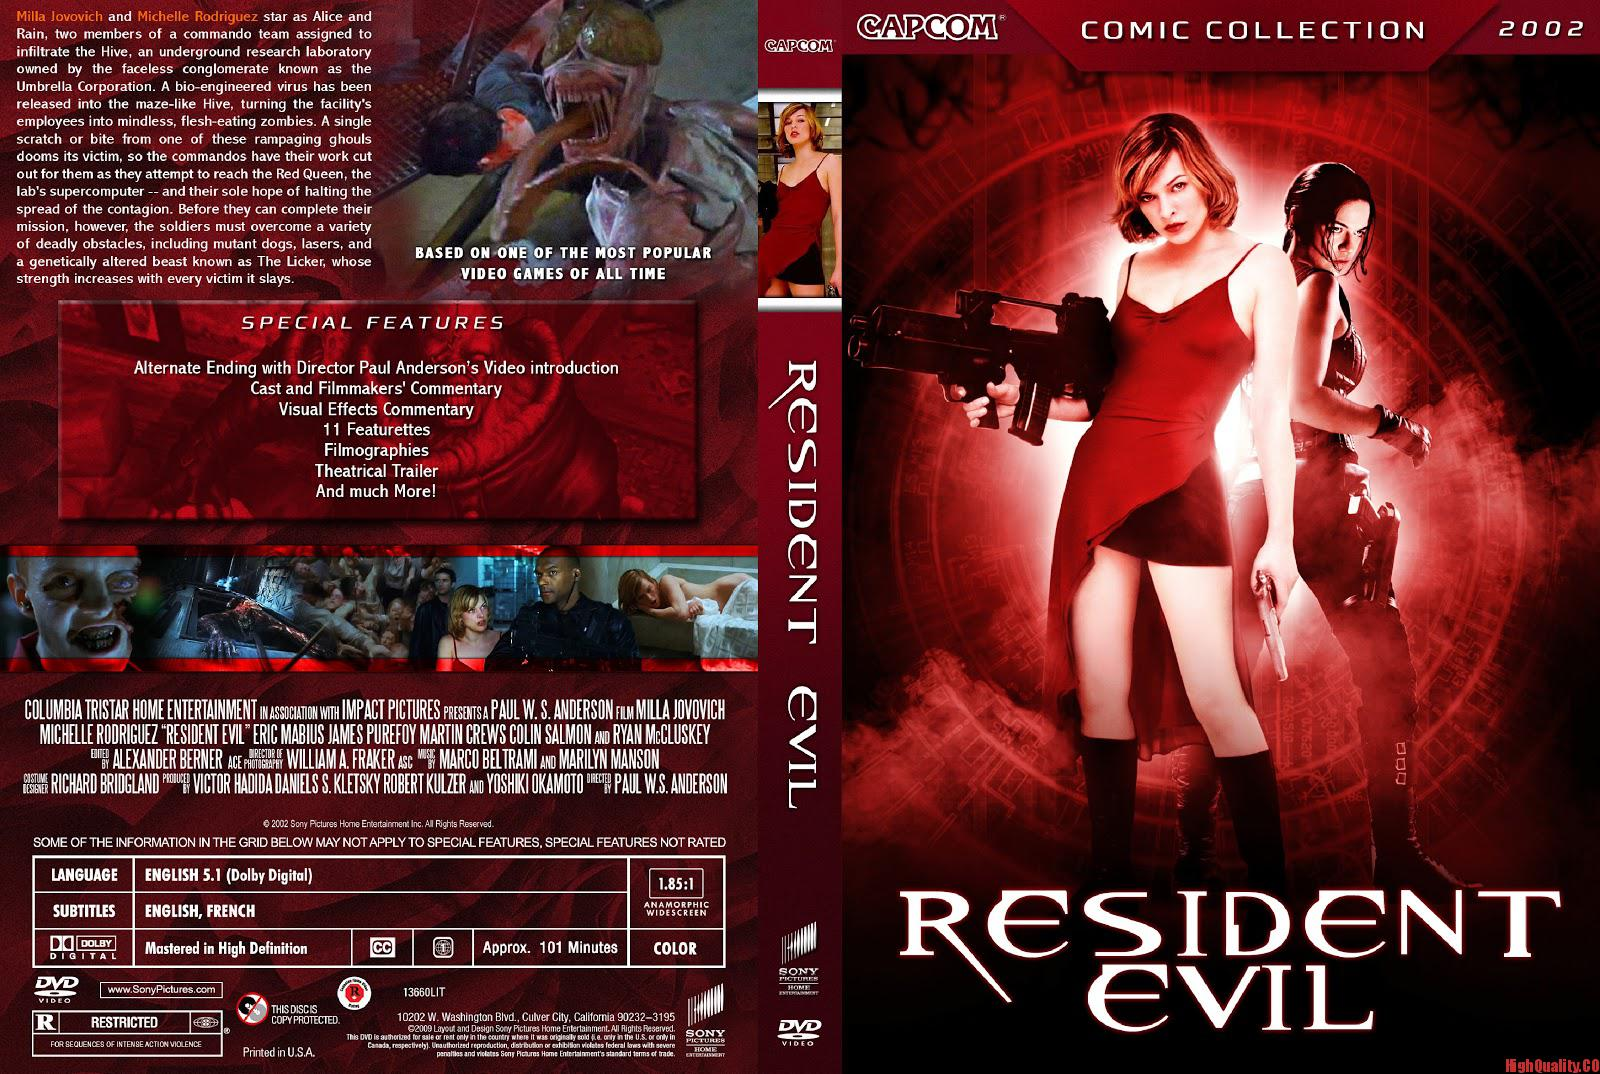 1-comic-collection-resident-evil-r1-cover-dvd-free.jpg